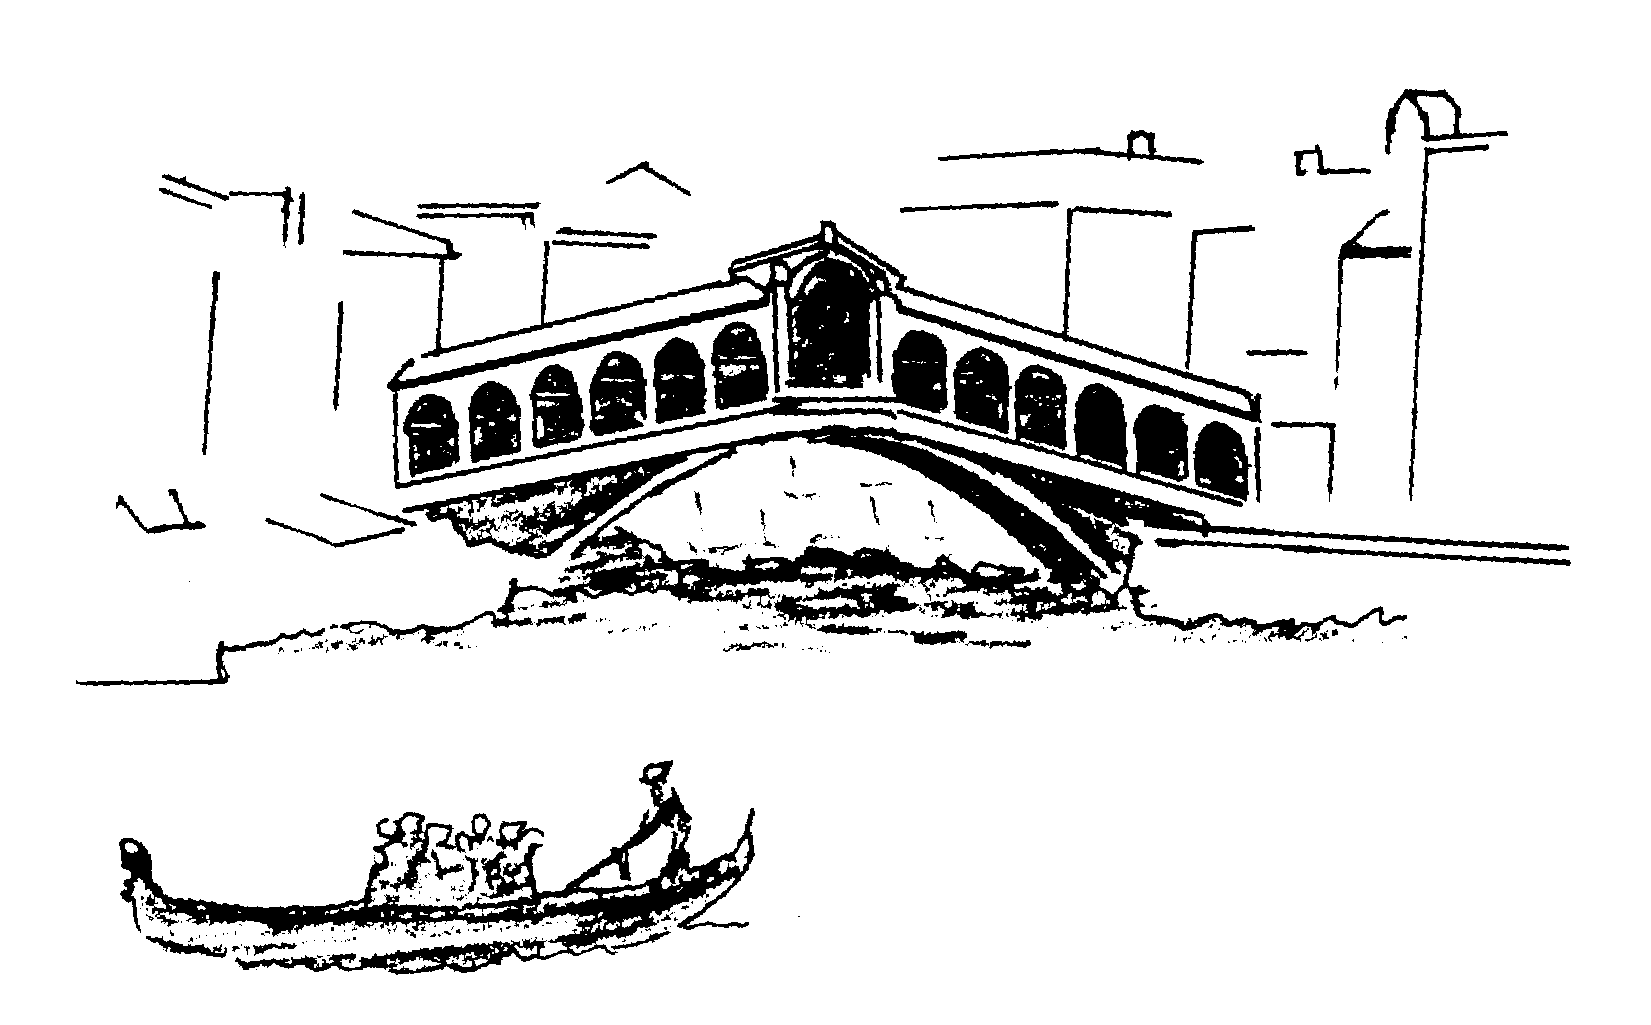 Sketch of the Rialto